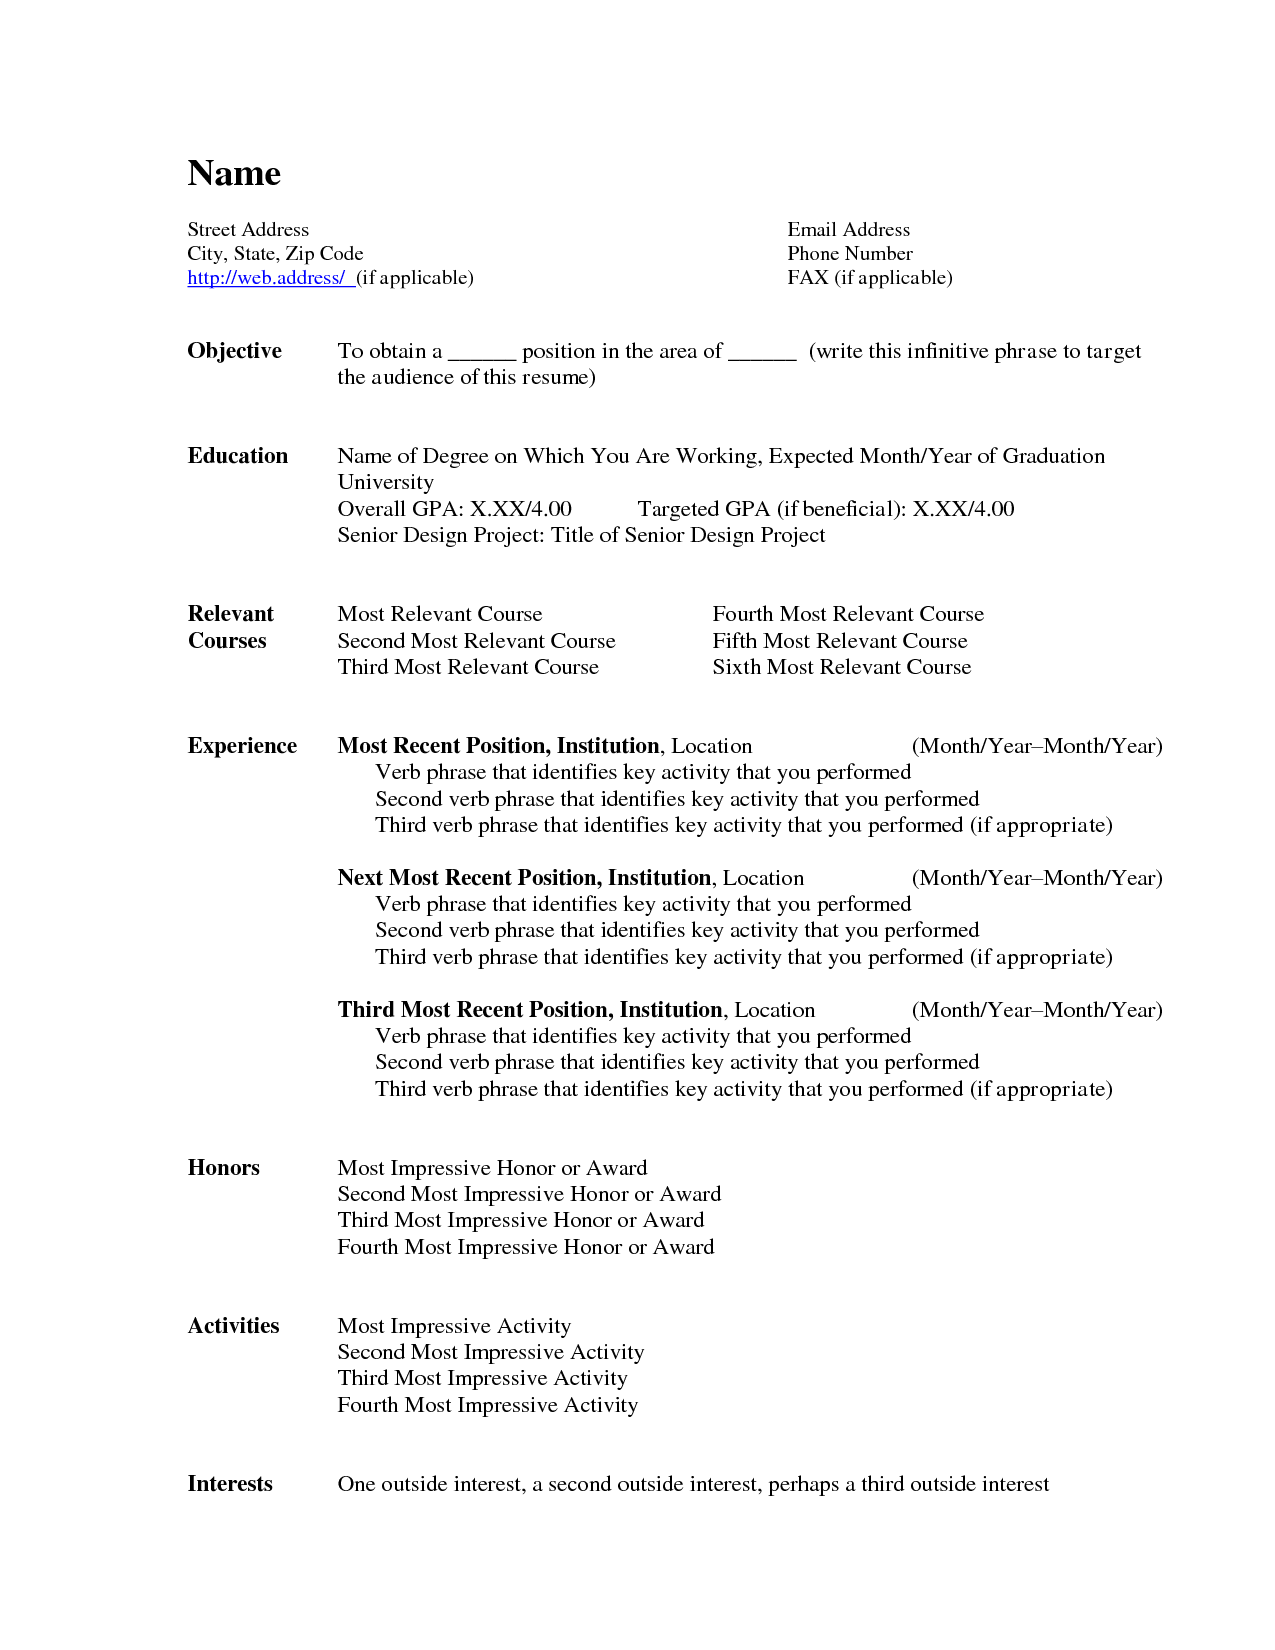 Free Resume Templates Word 2010 Beauteous Microsoft Word Resume Template Resume Builder Resume Resume  Http